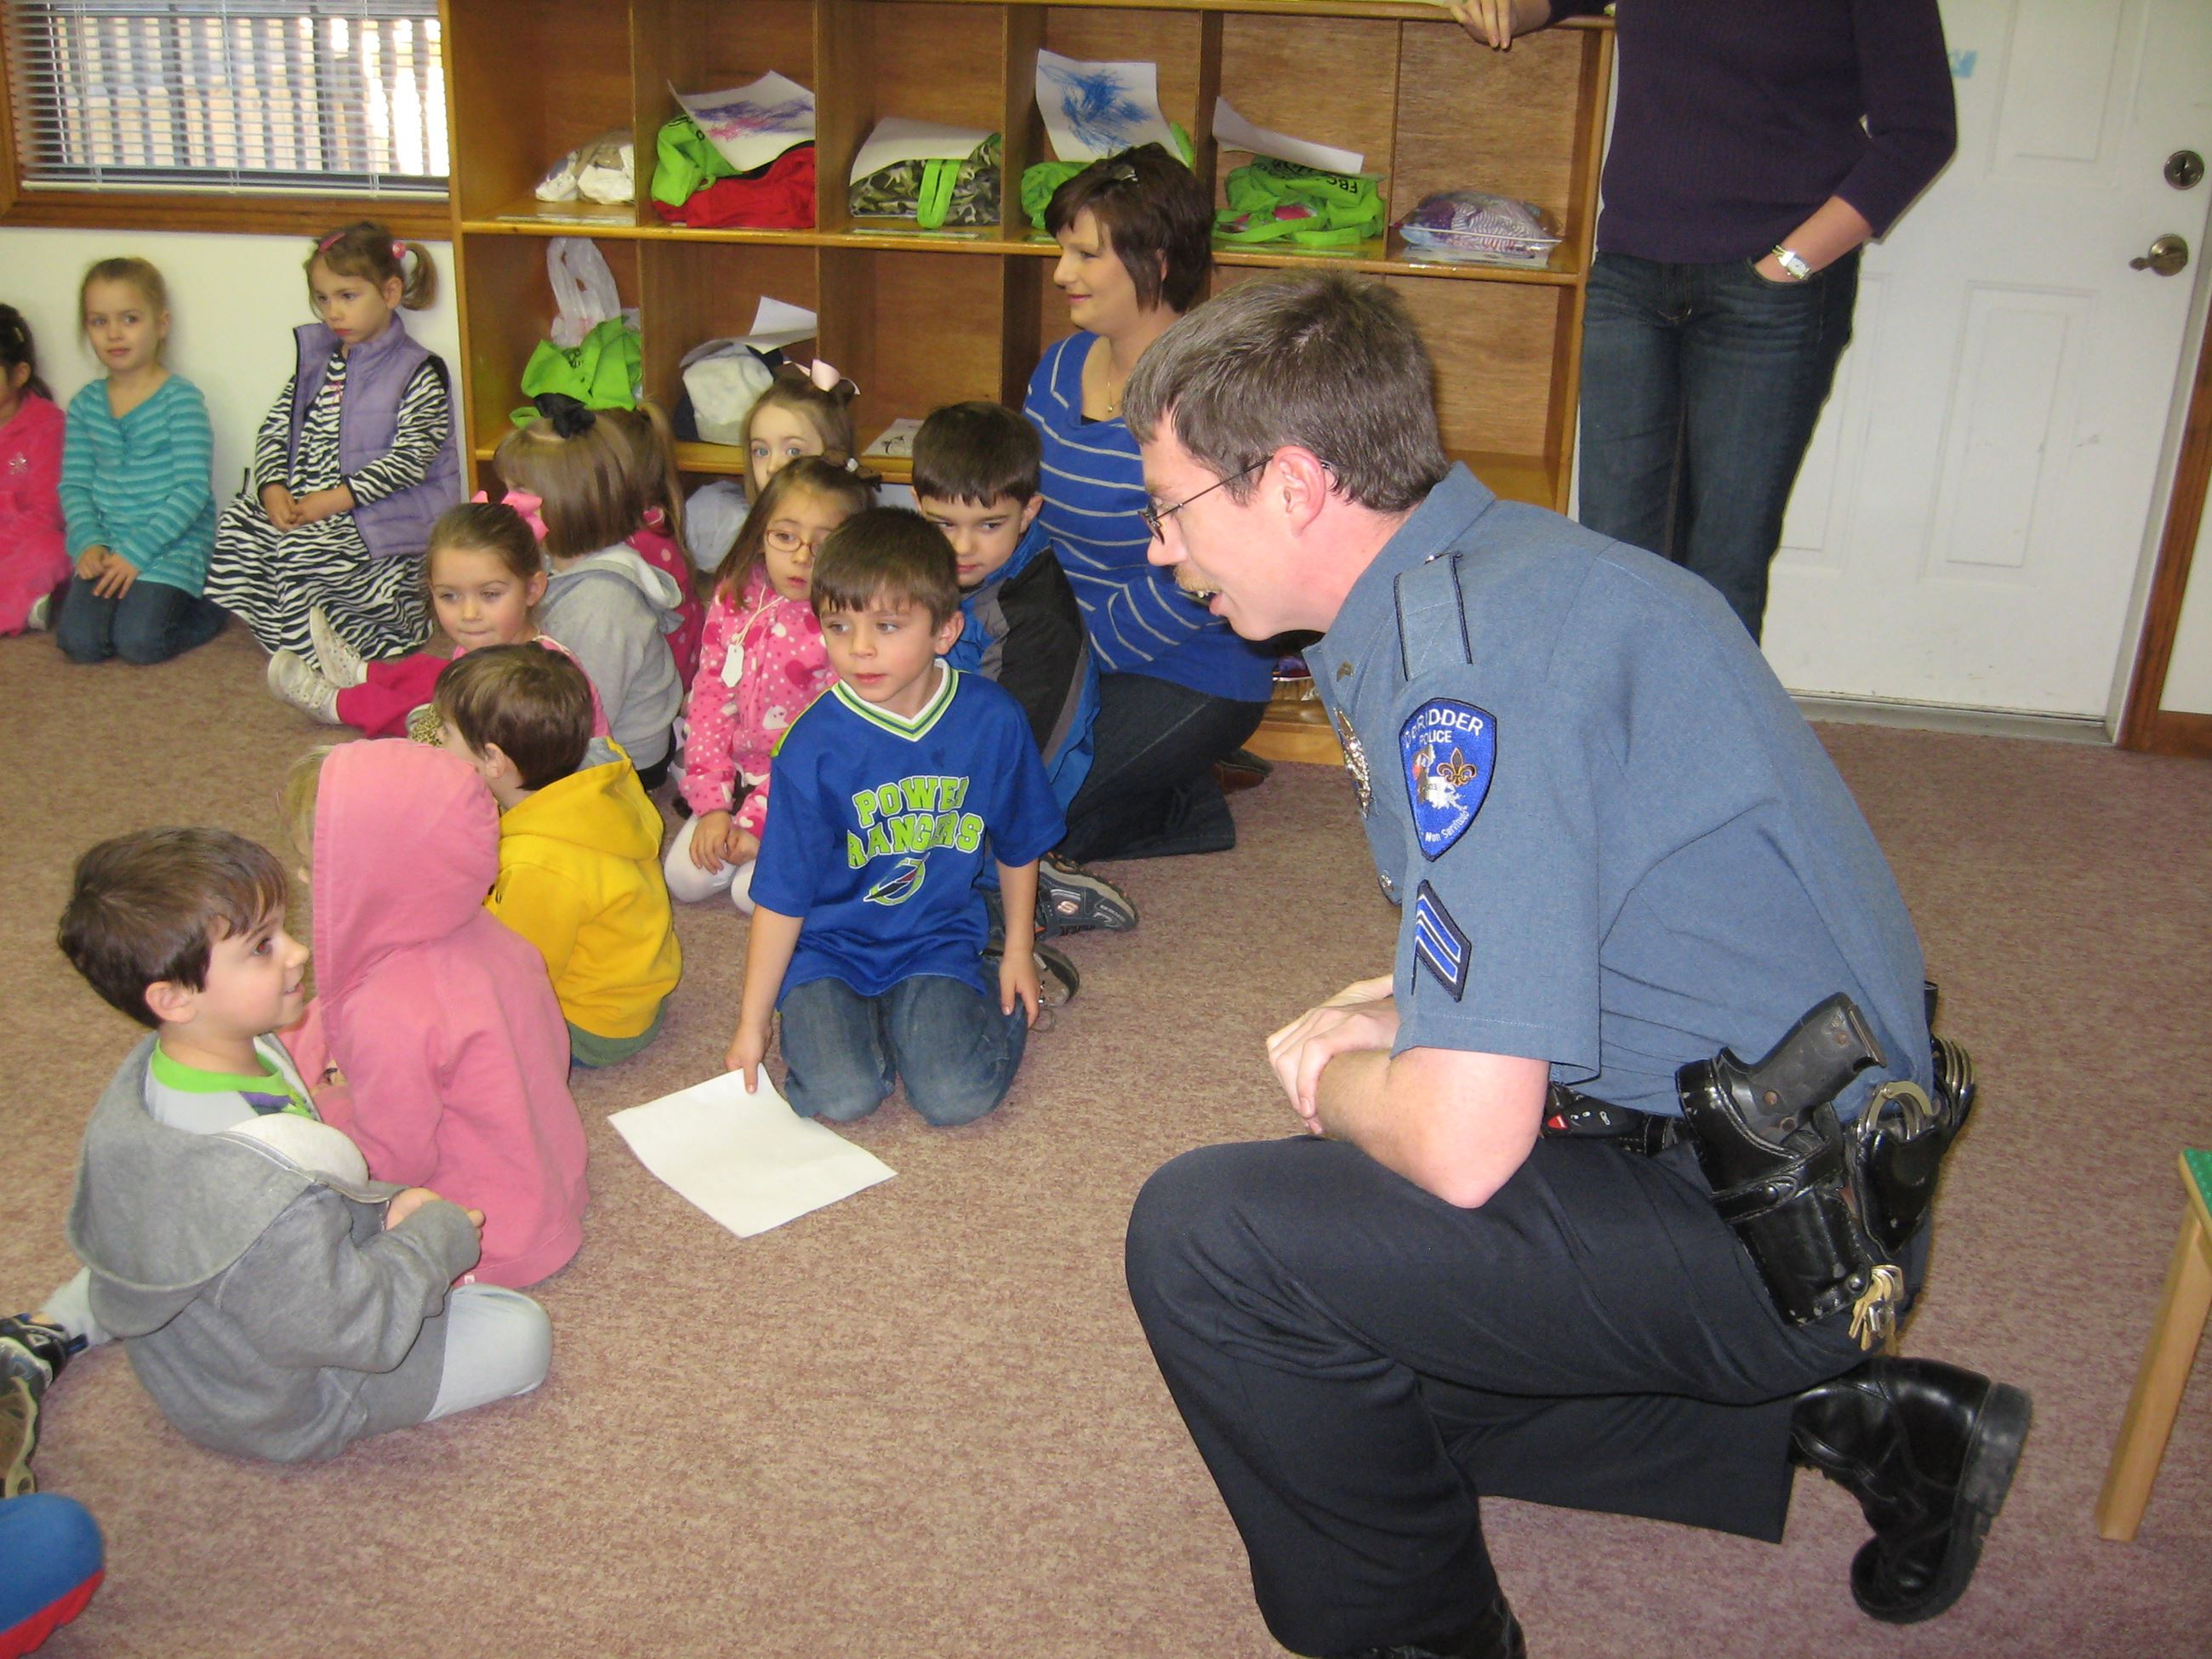 Officer Talks to Children in a Classroom